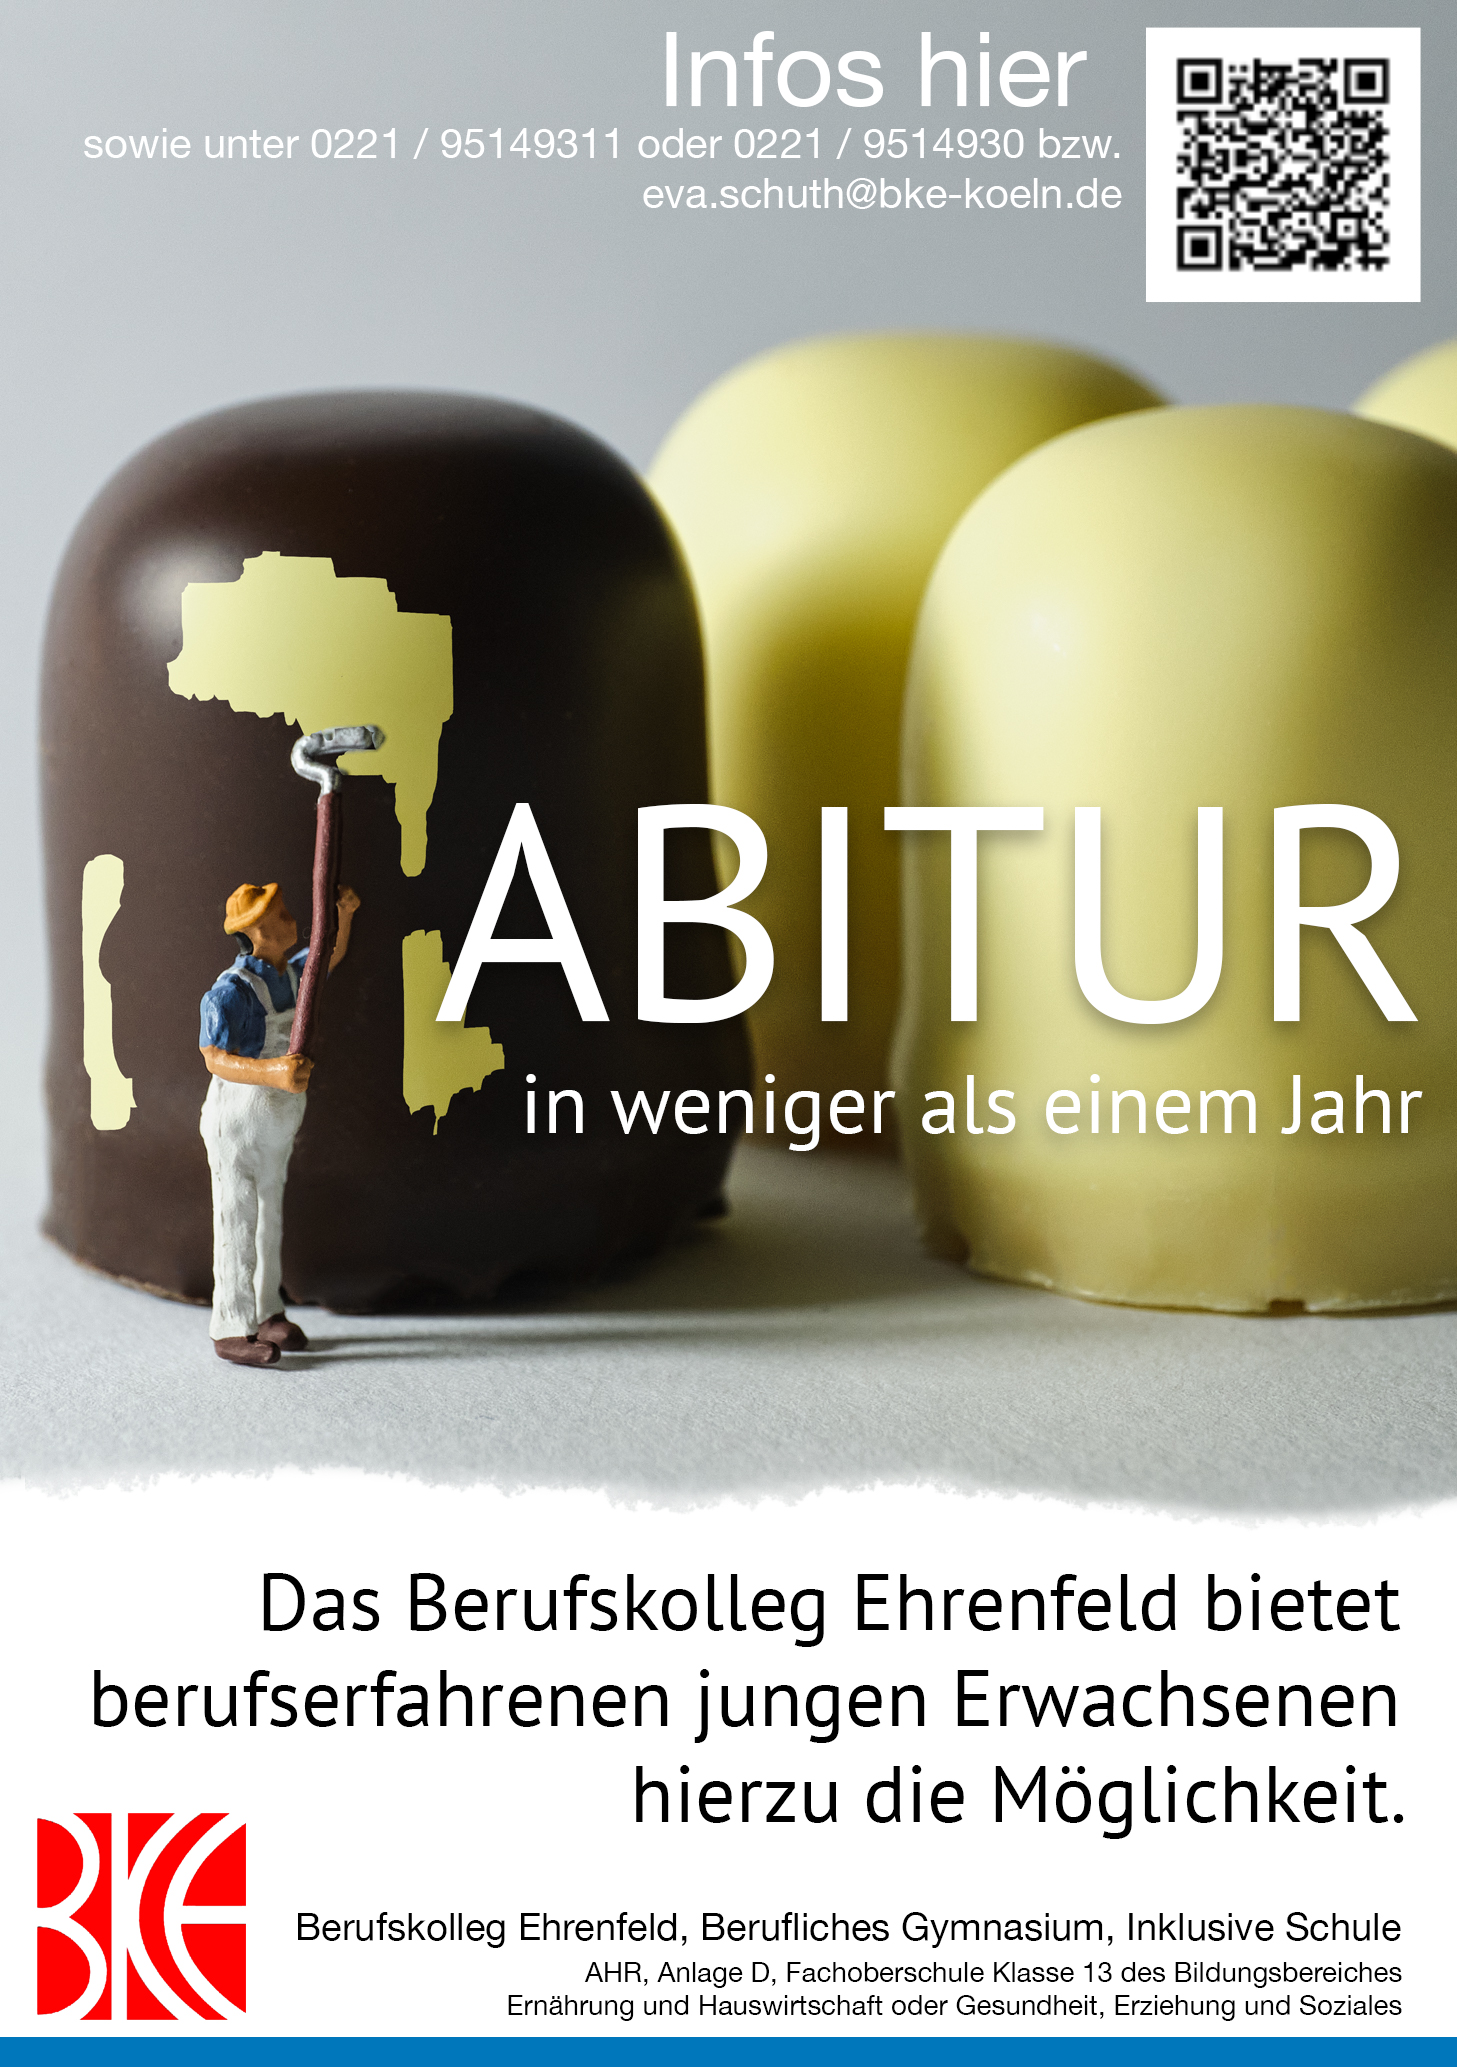 Abitur Flyer ErgaL nz 2